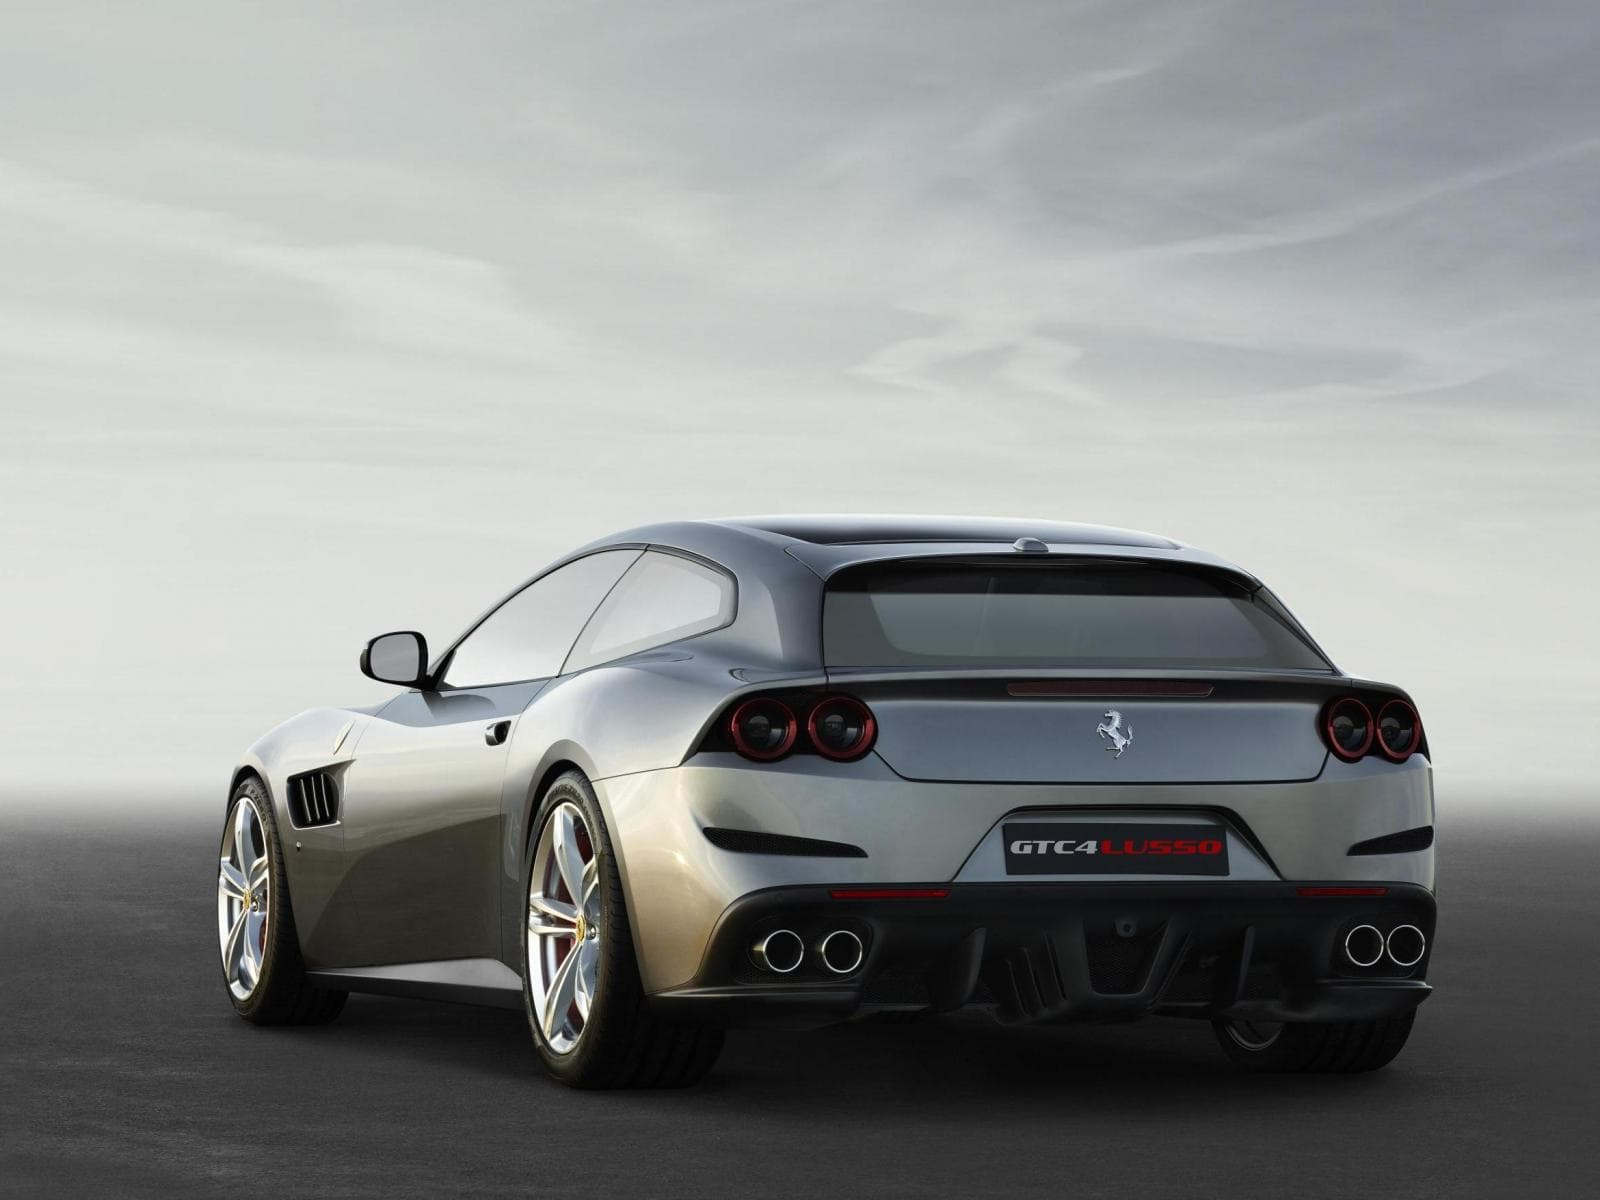 want foskers insurance a here buy looking you to s be at ferrari should what cheap